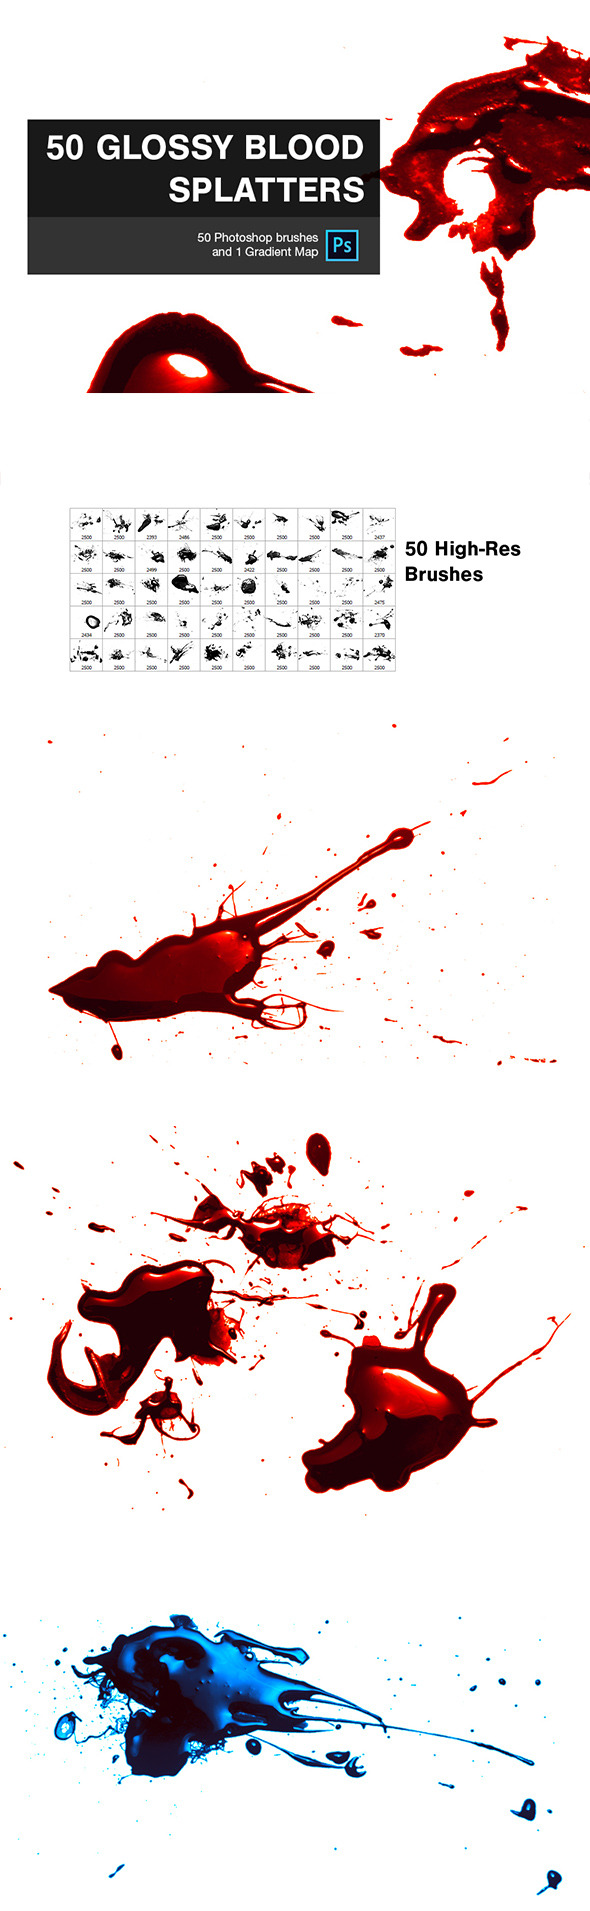 GraphicRiver 50 Glossy Blood Splatters 9137863